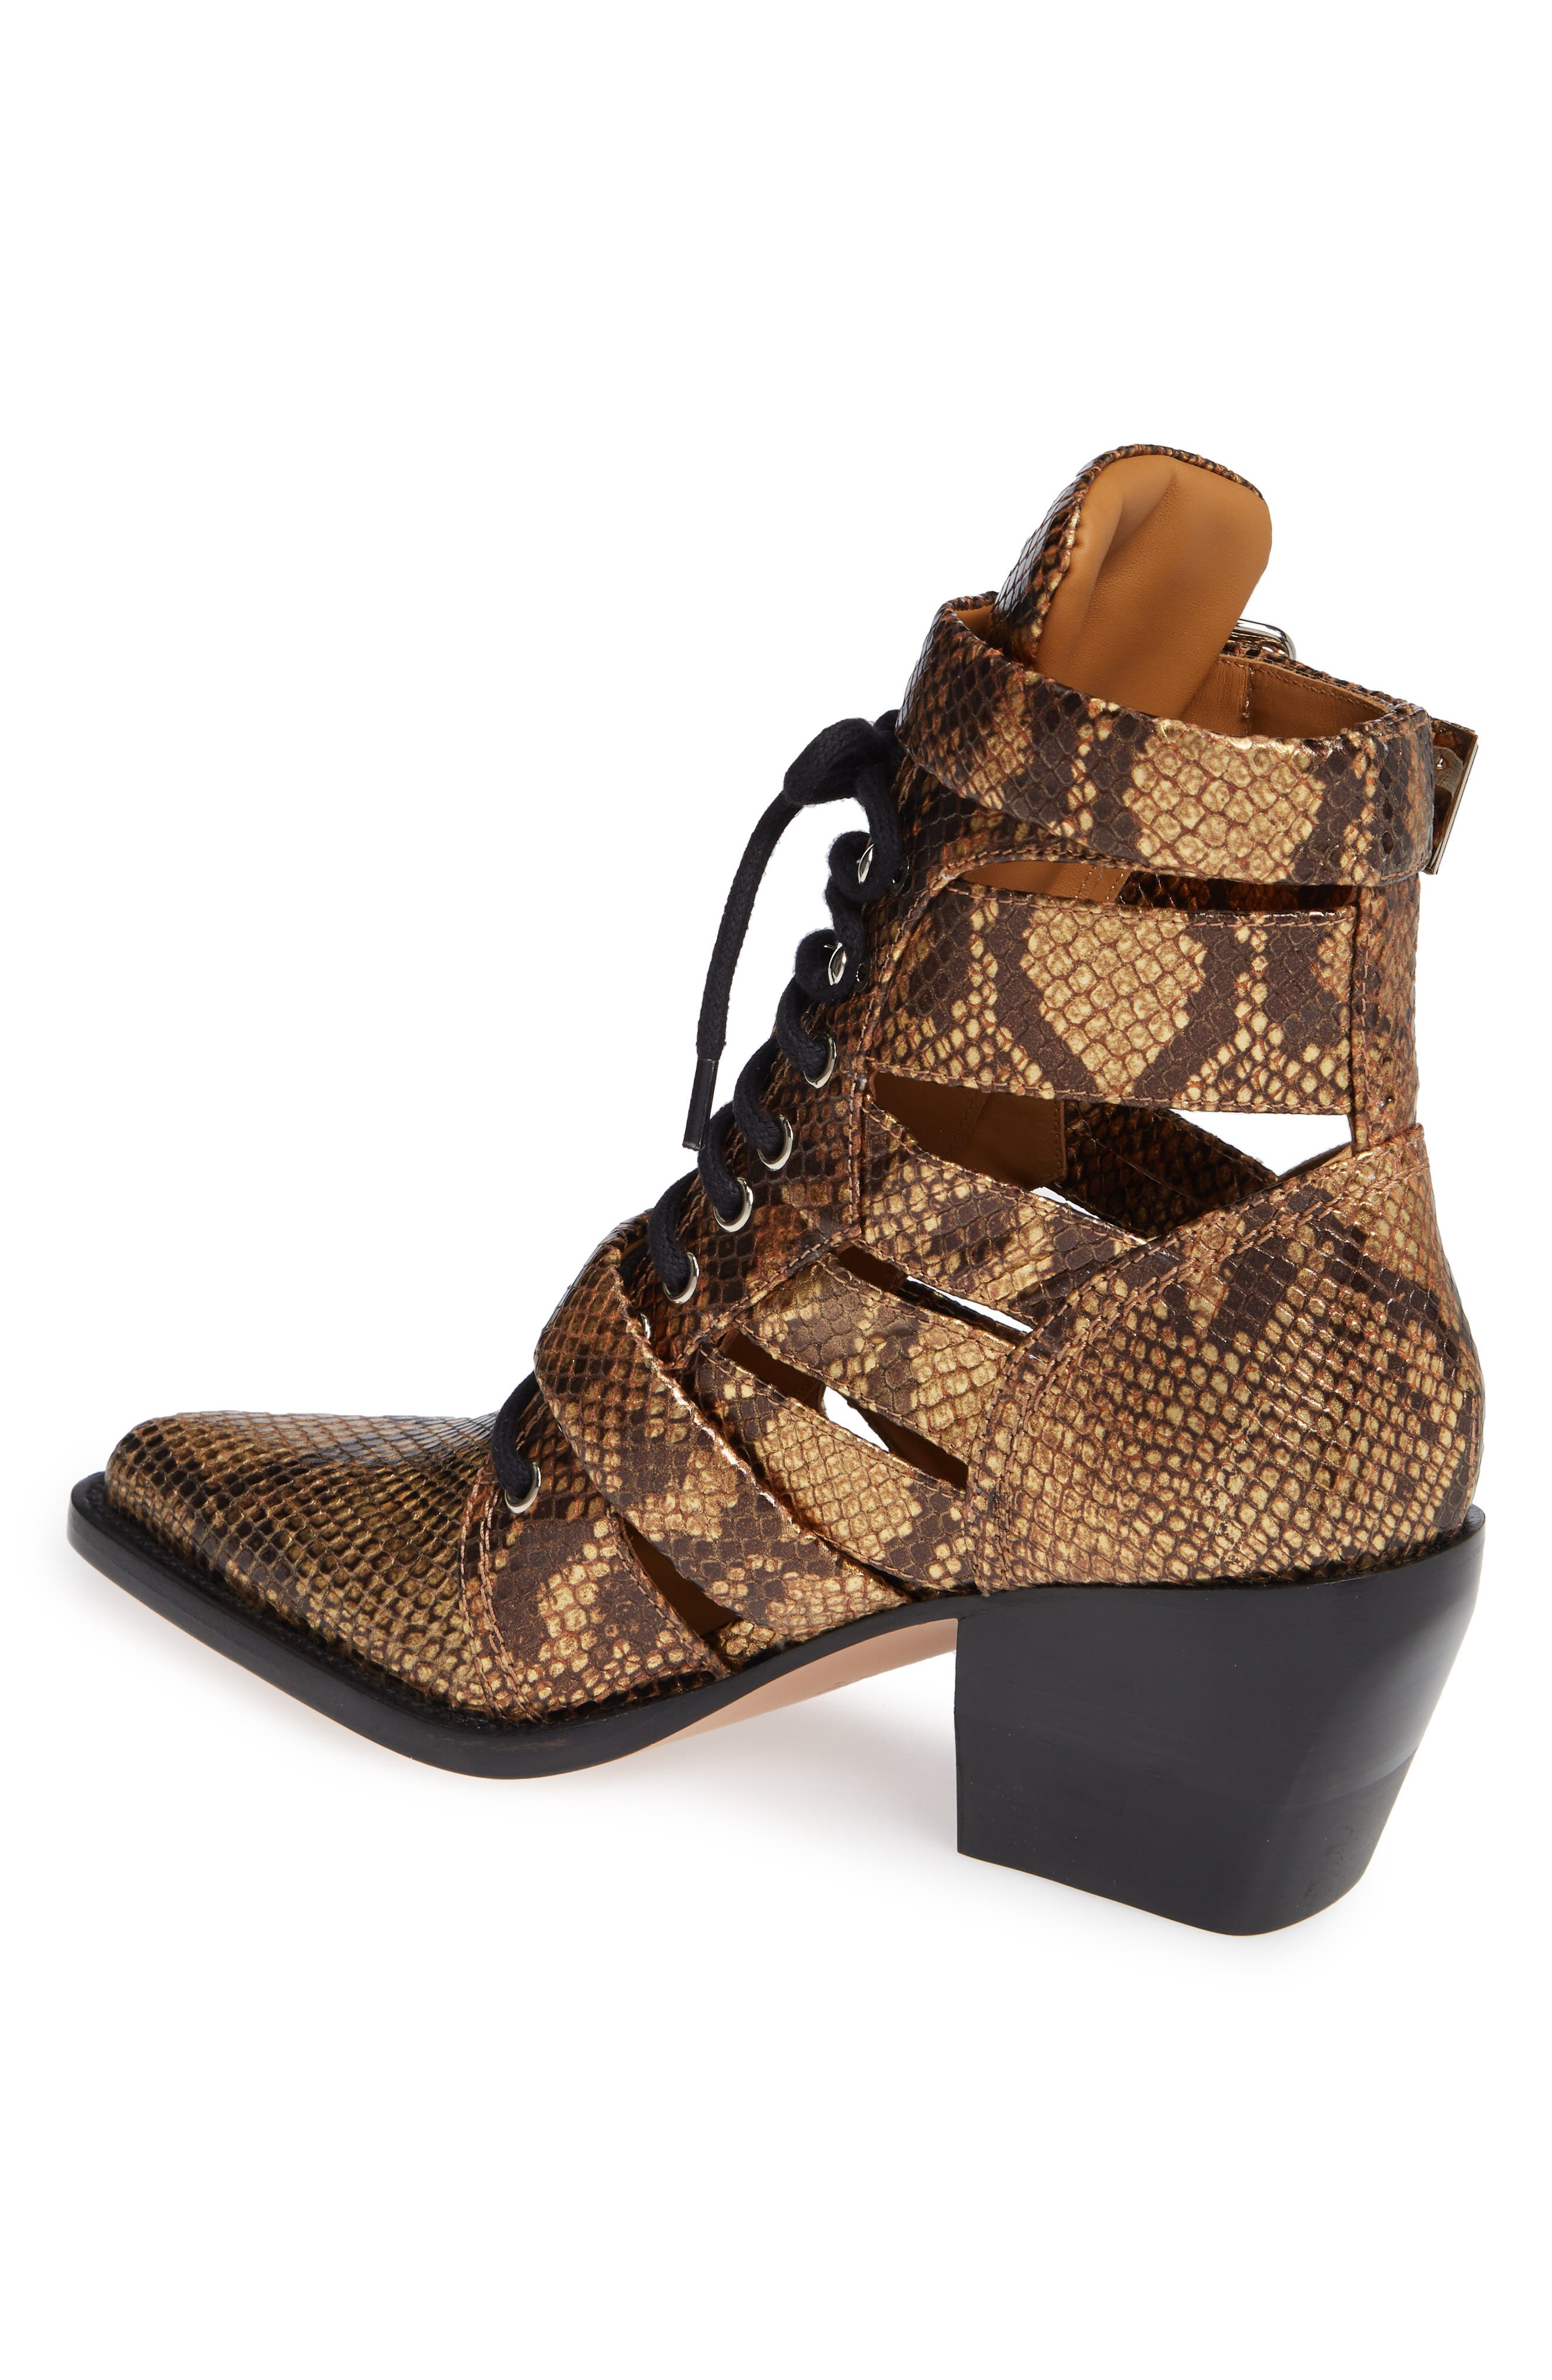 CHLOÉ,                             Rylee Pointy Toe Cage Boot,                             Alternate thumbnail 2, color,                             HARVEST GOLD LEATHER